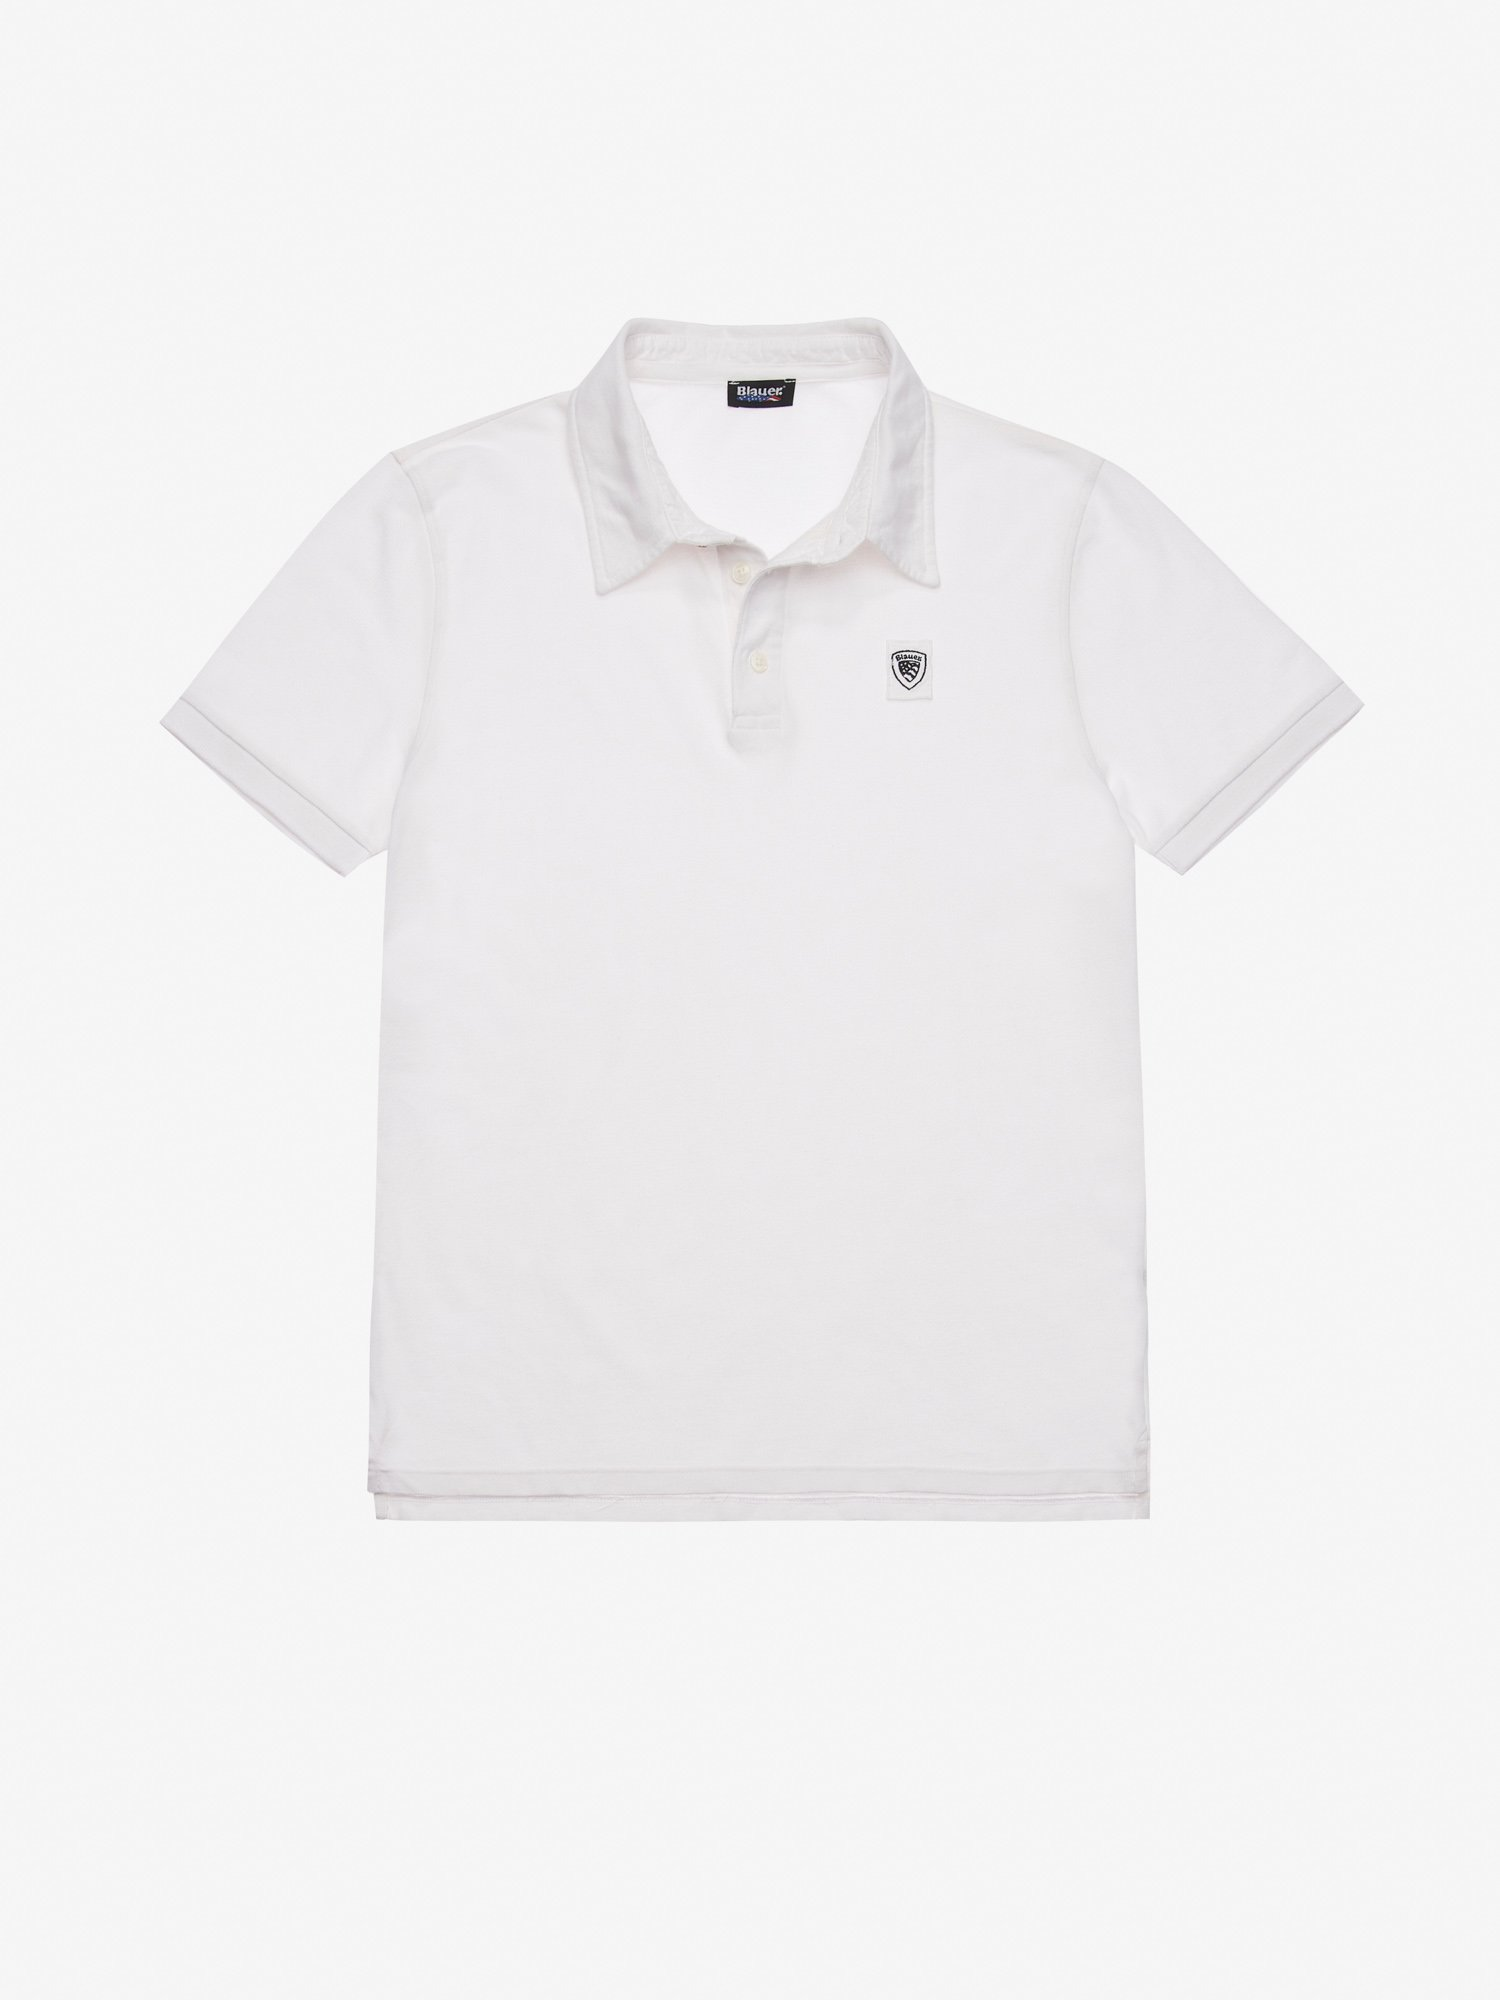 GARMENT DYED POLO SHIRT - Blauer